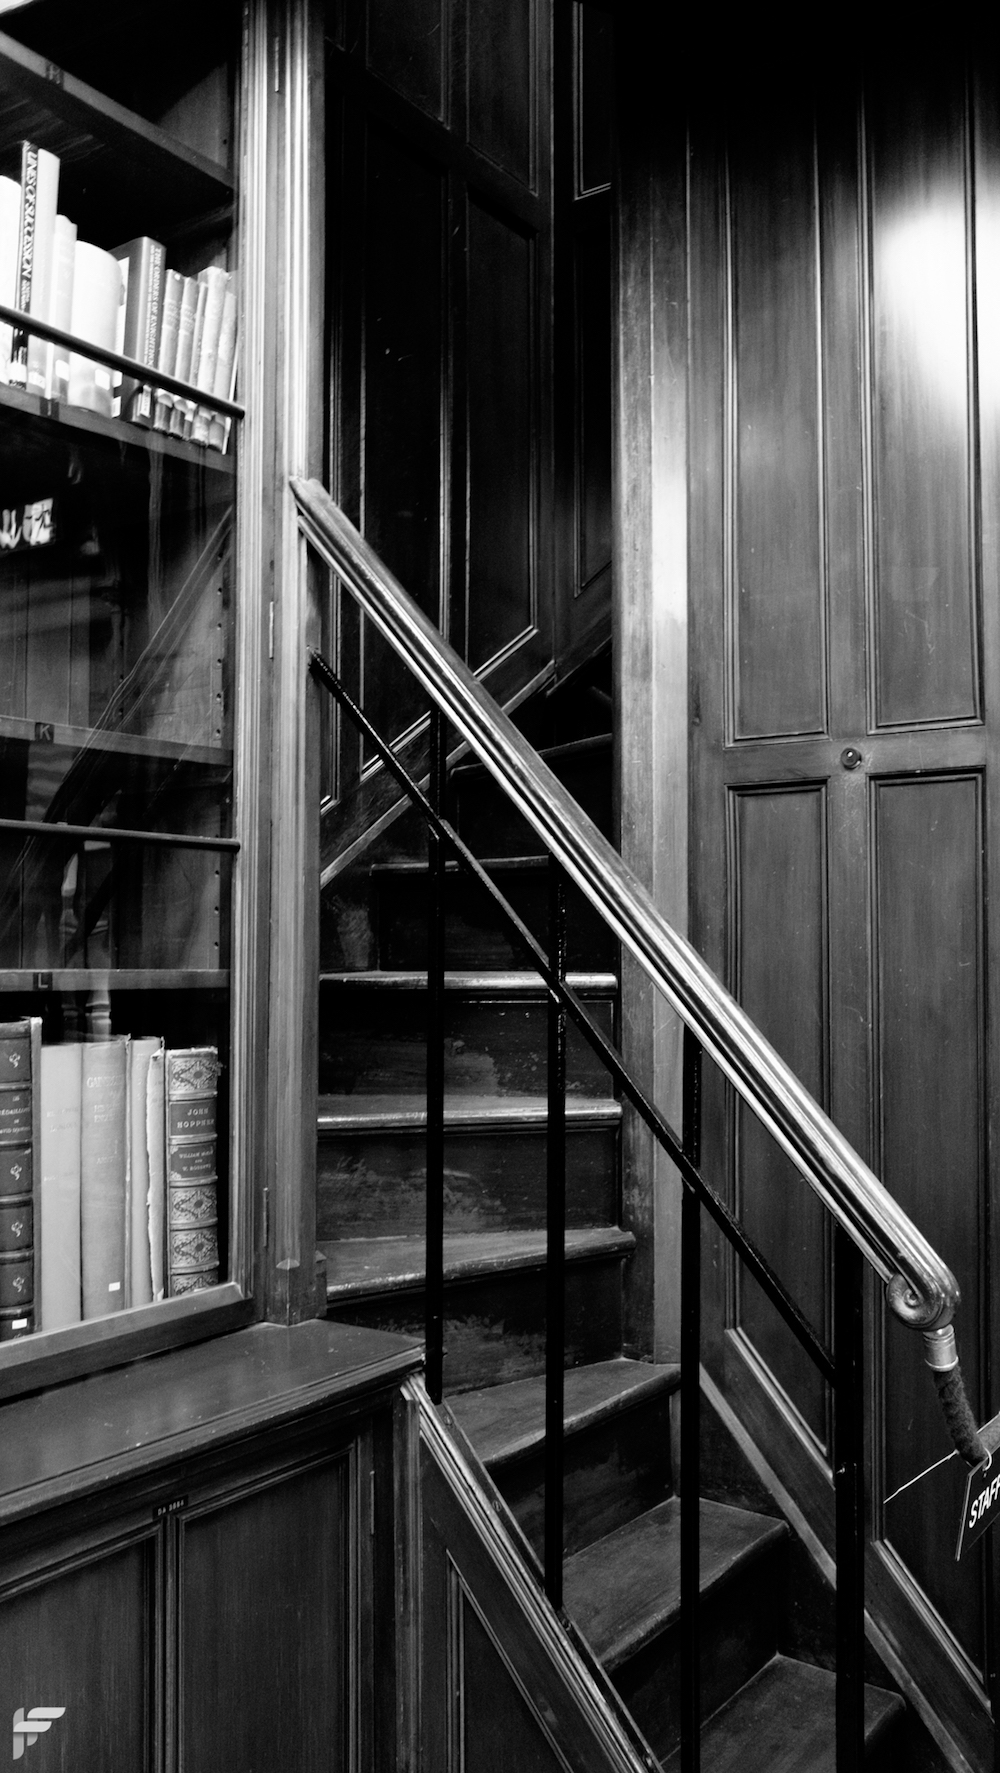 Library Staircase, Edinburgh - Fuji X70